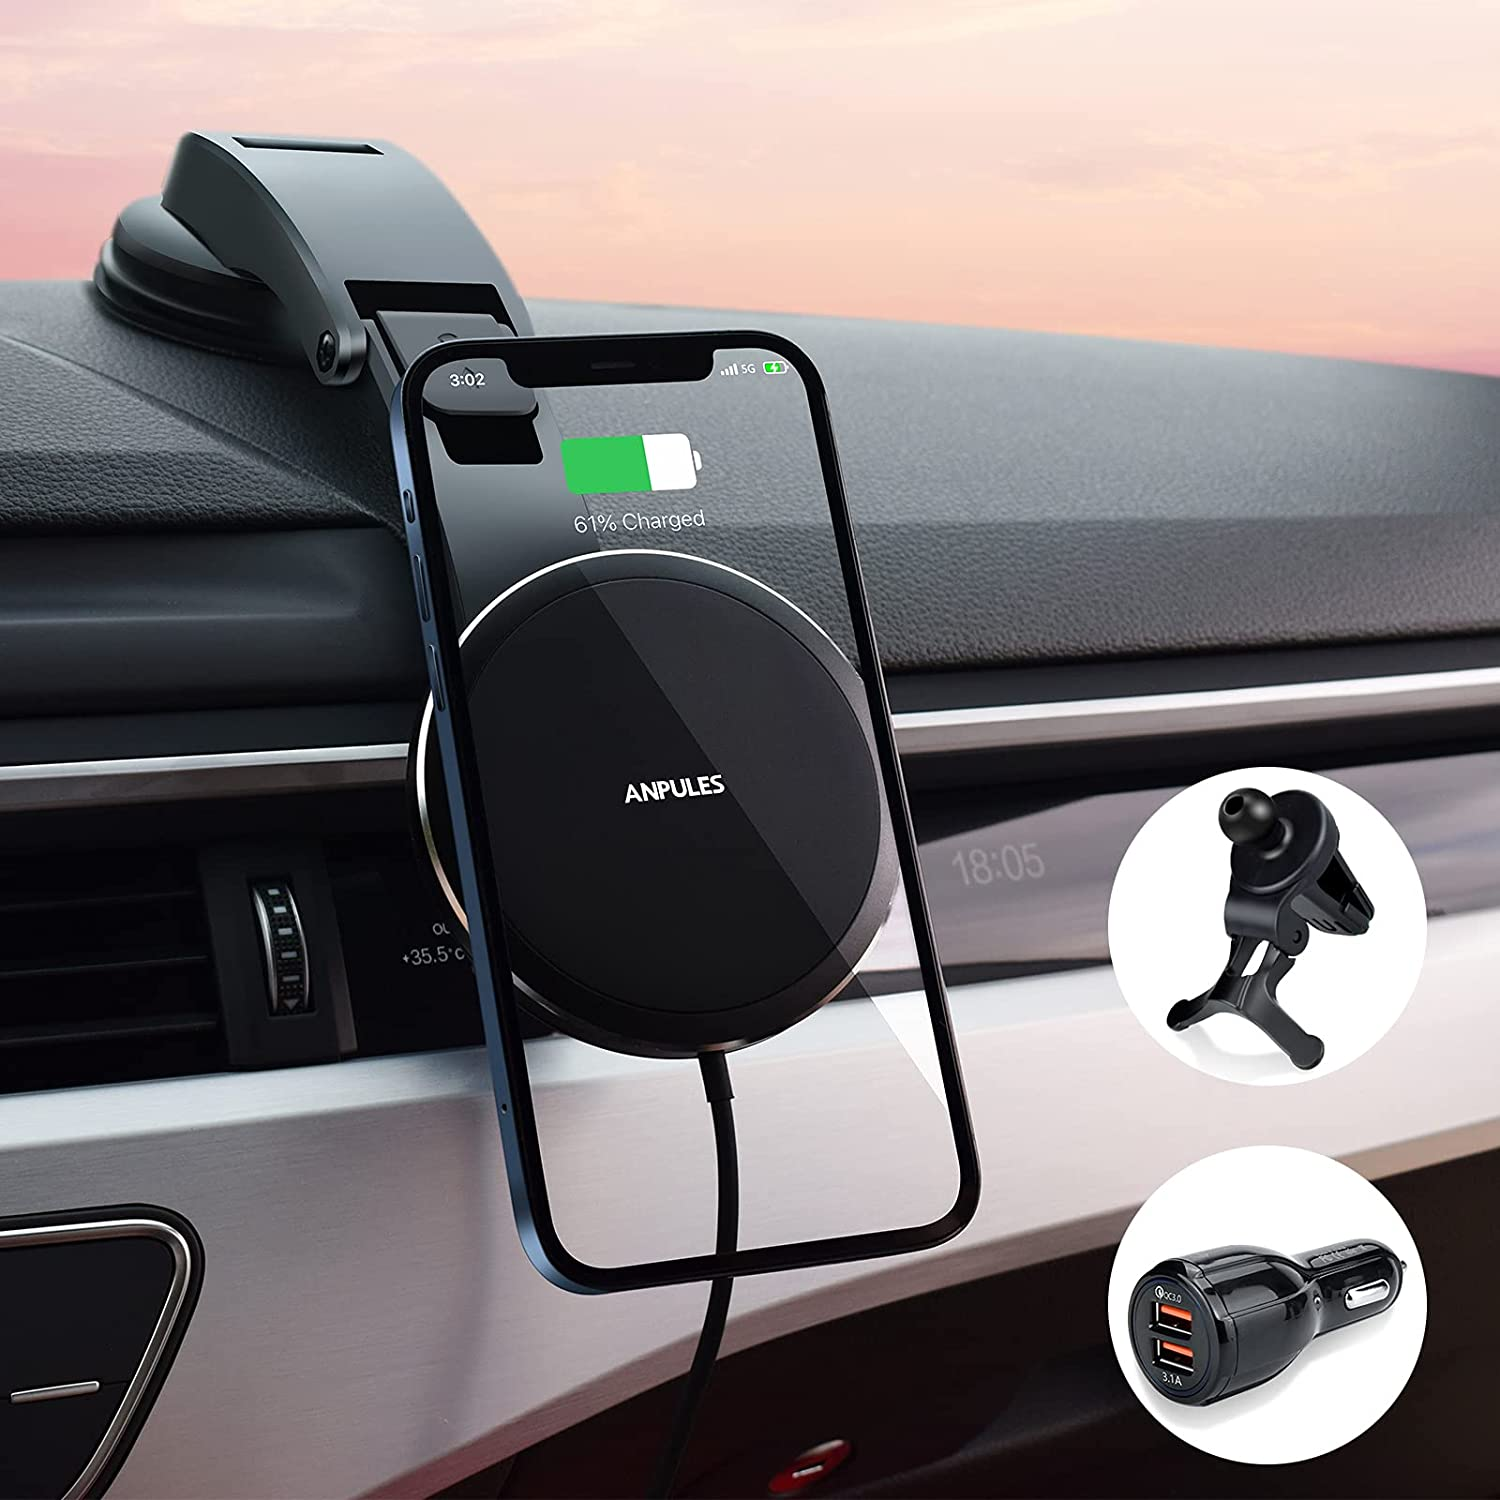 ANPULES Magnetic Wireless Car Charger, Auto-Alignment Car Phone Mount Air Vent Dashboard Holder, Fast Wireless Charging Stand Only Compatible with iPhone13 &iPhone 12 Series(with QC 3.0 Car Adapter)